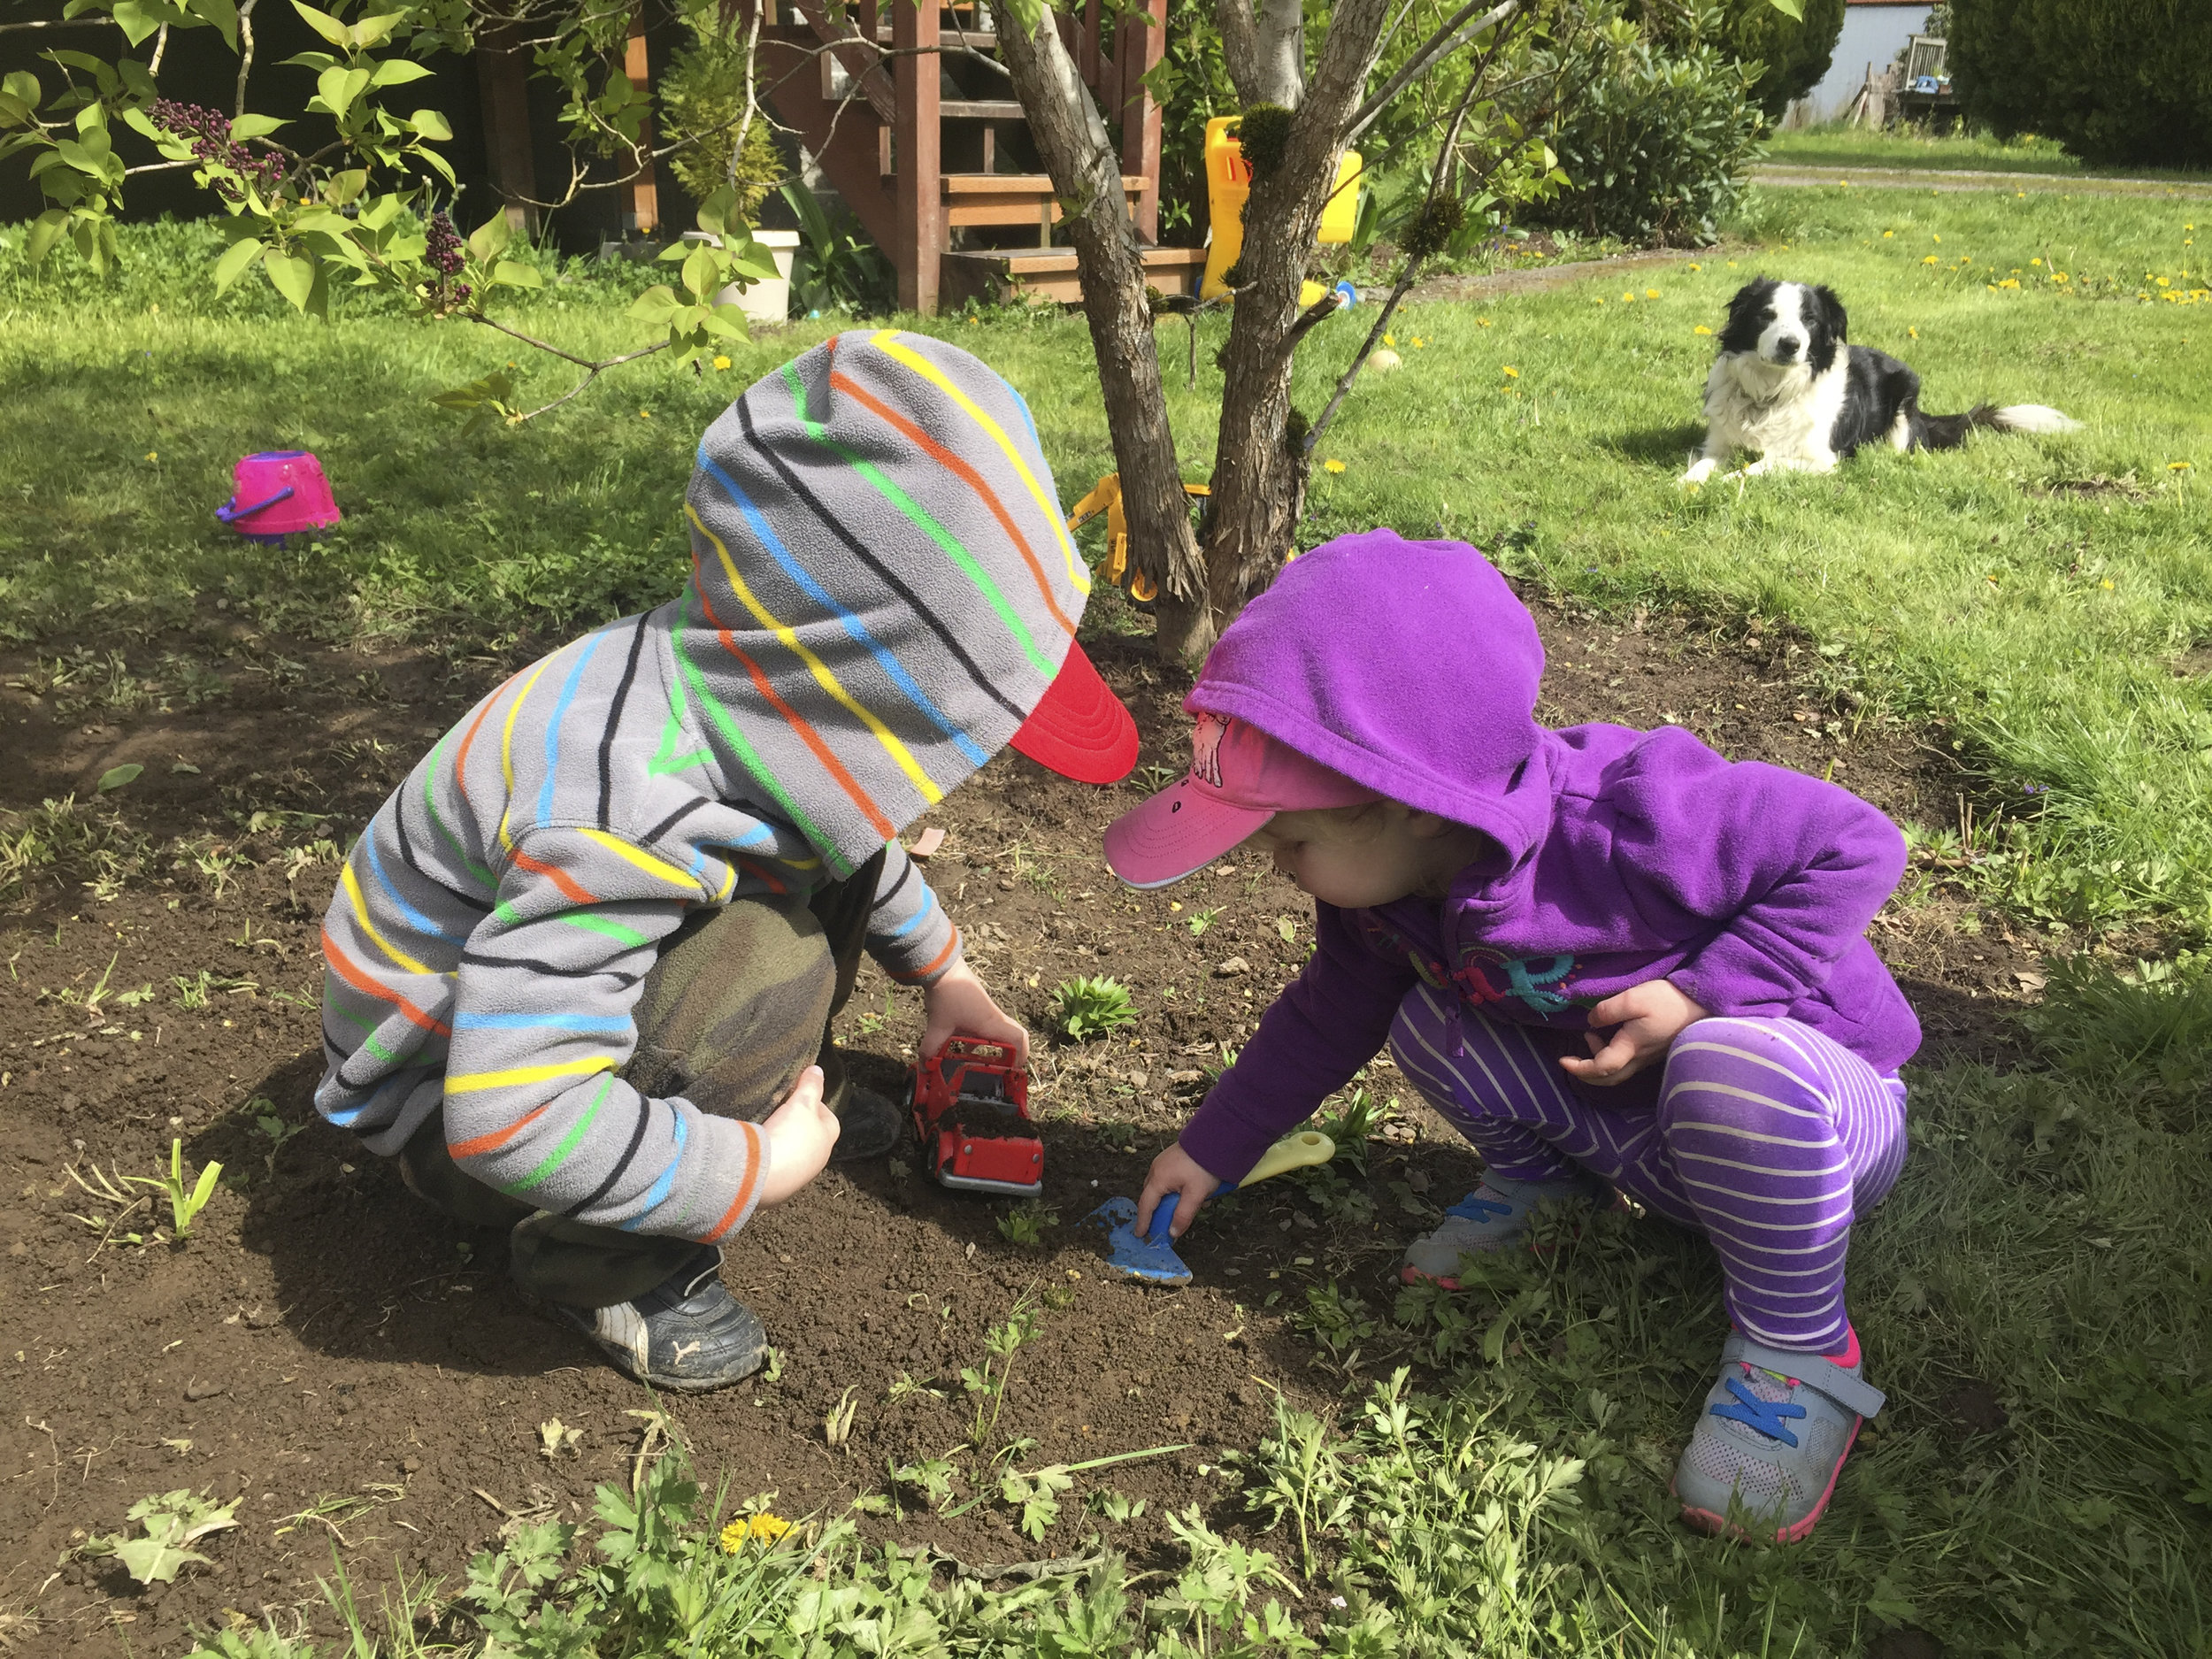 adjusting to 3 kids,  instagram photo, kids playin in dirt